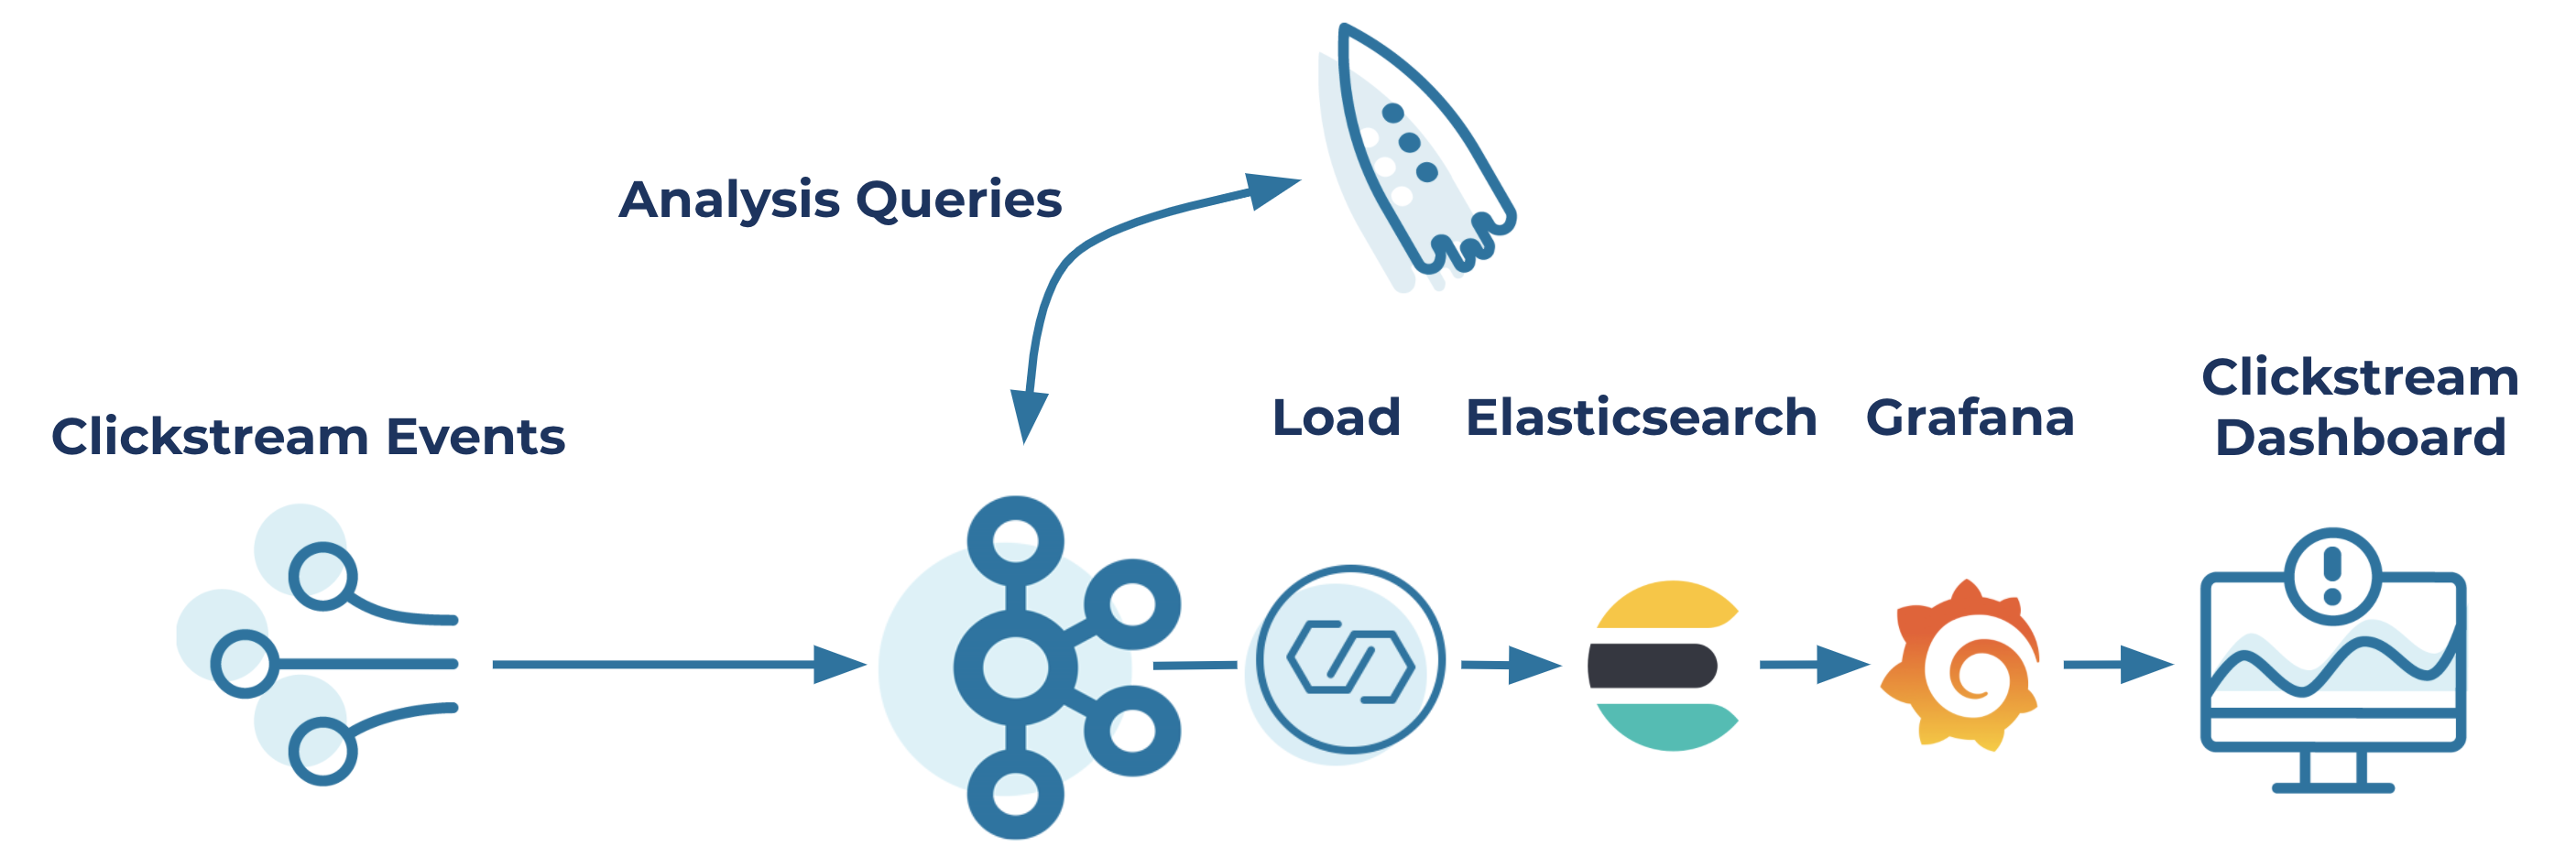 Clickstream Events ➝ Kafka | Analysis Queries with ksqlDB ➝ Load ➝ Elasticsearch ➝ Grafana ➝ Clickstream Dashboard